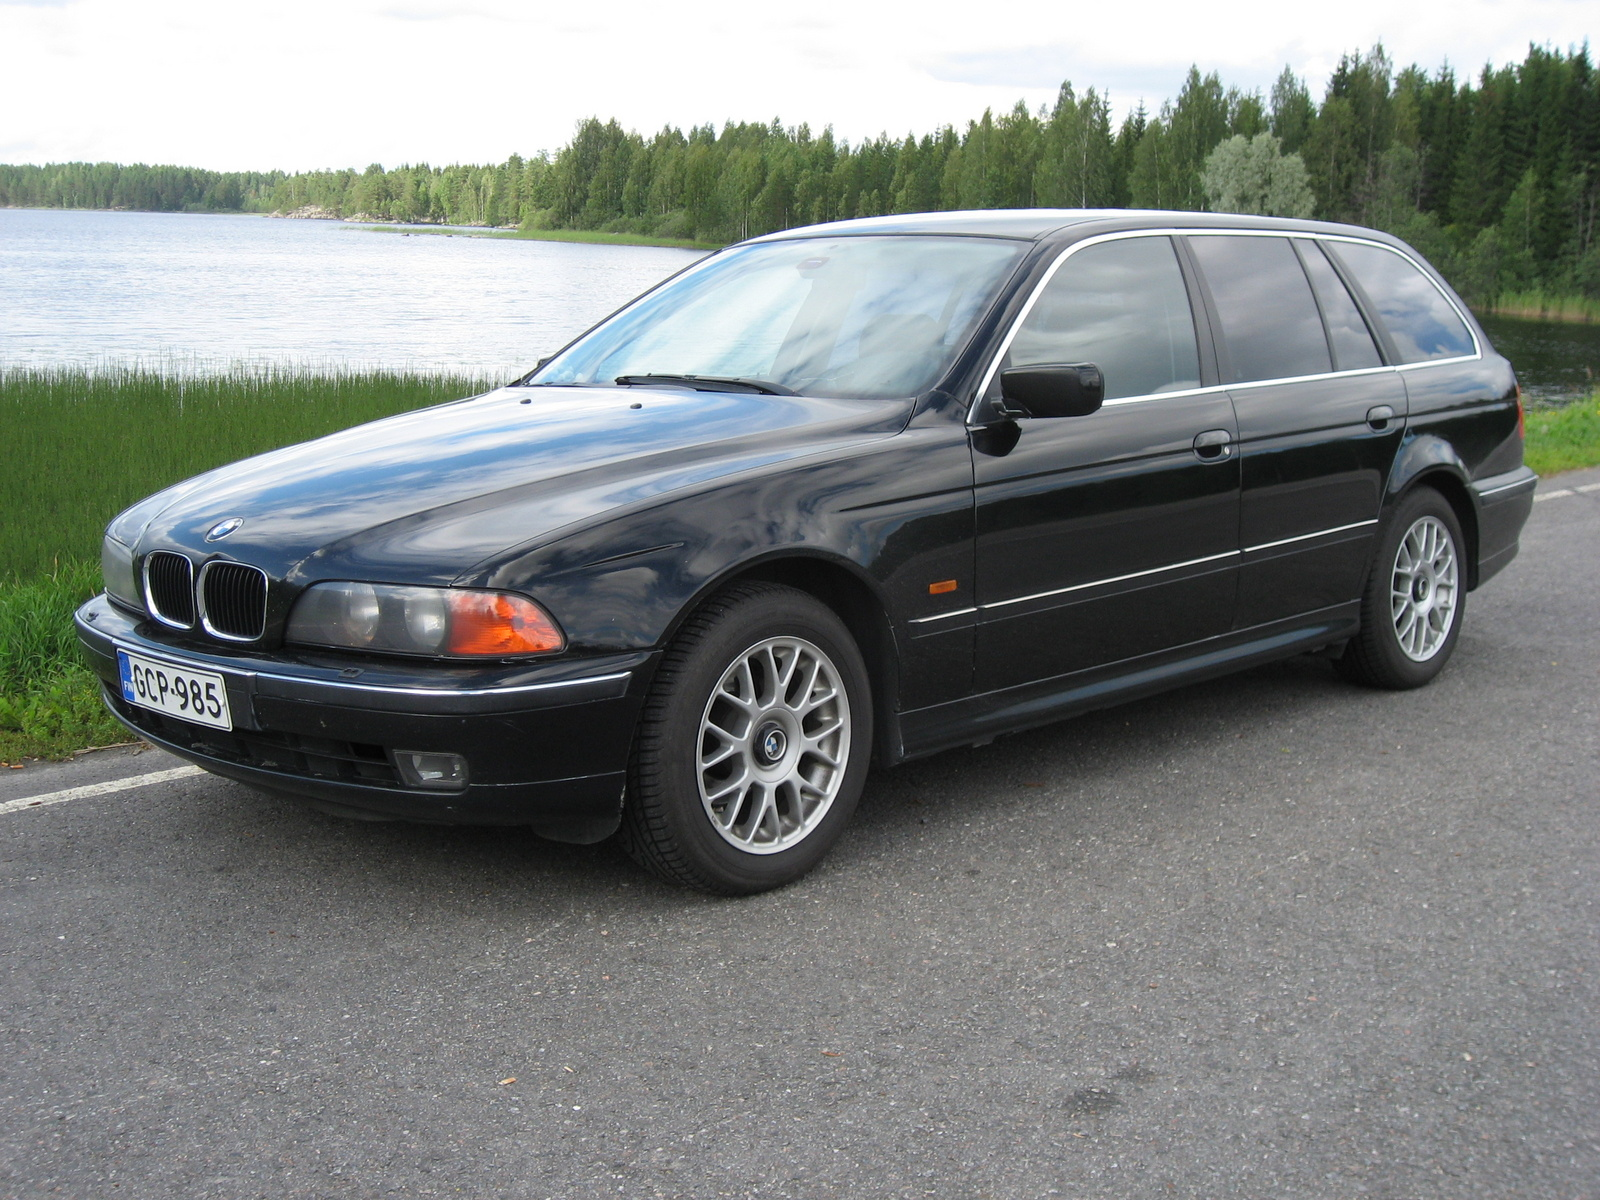 1998 BMW 5 Series picture